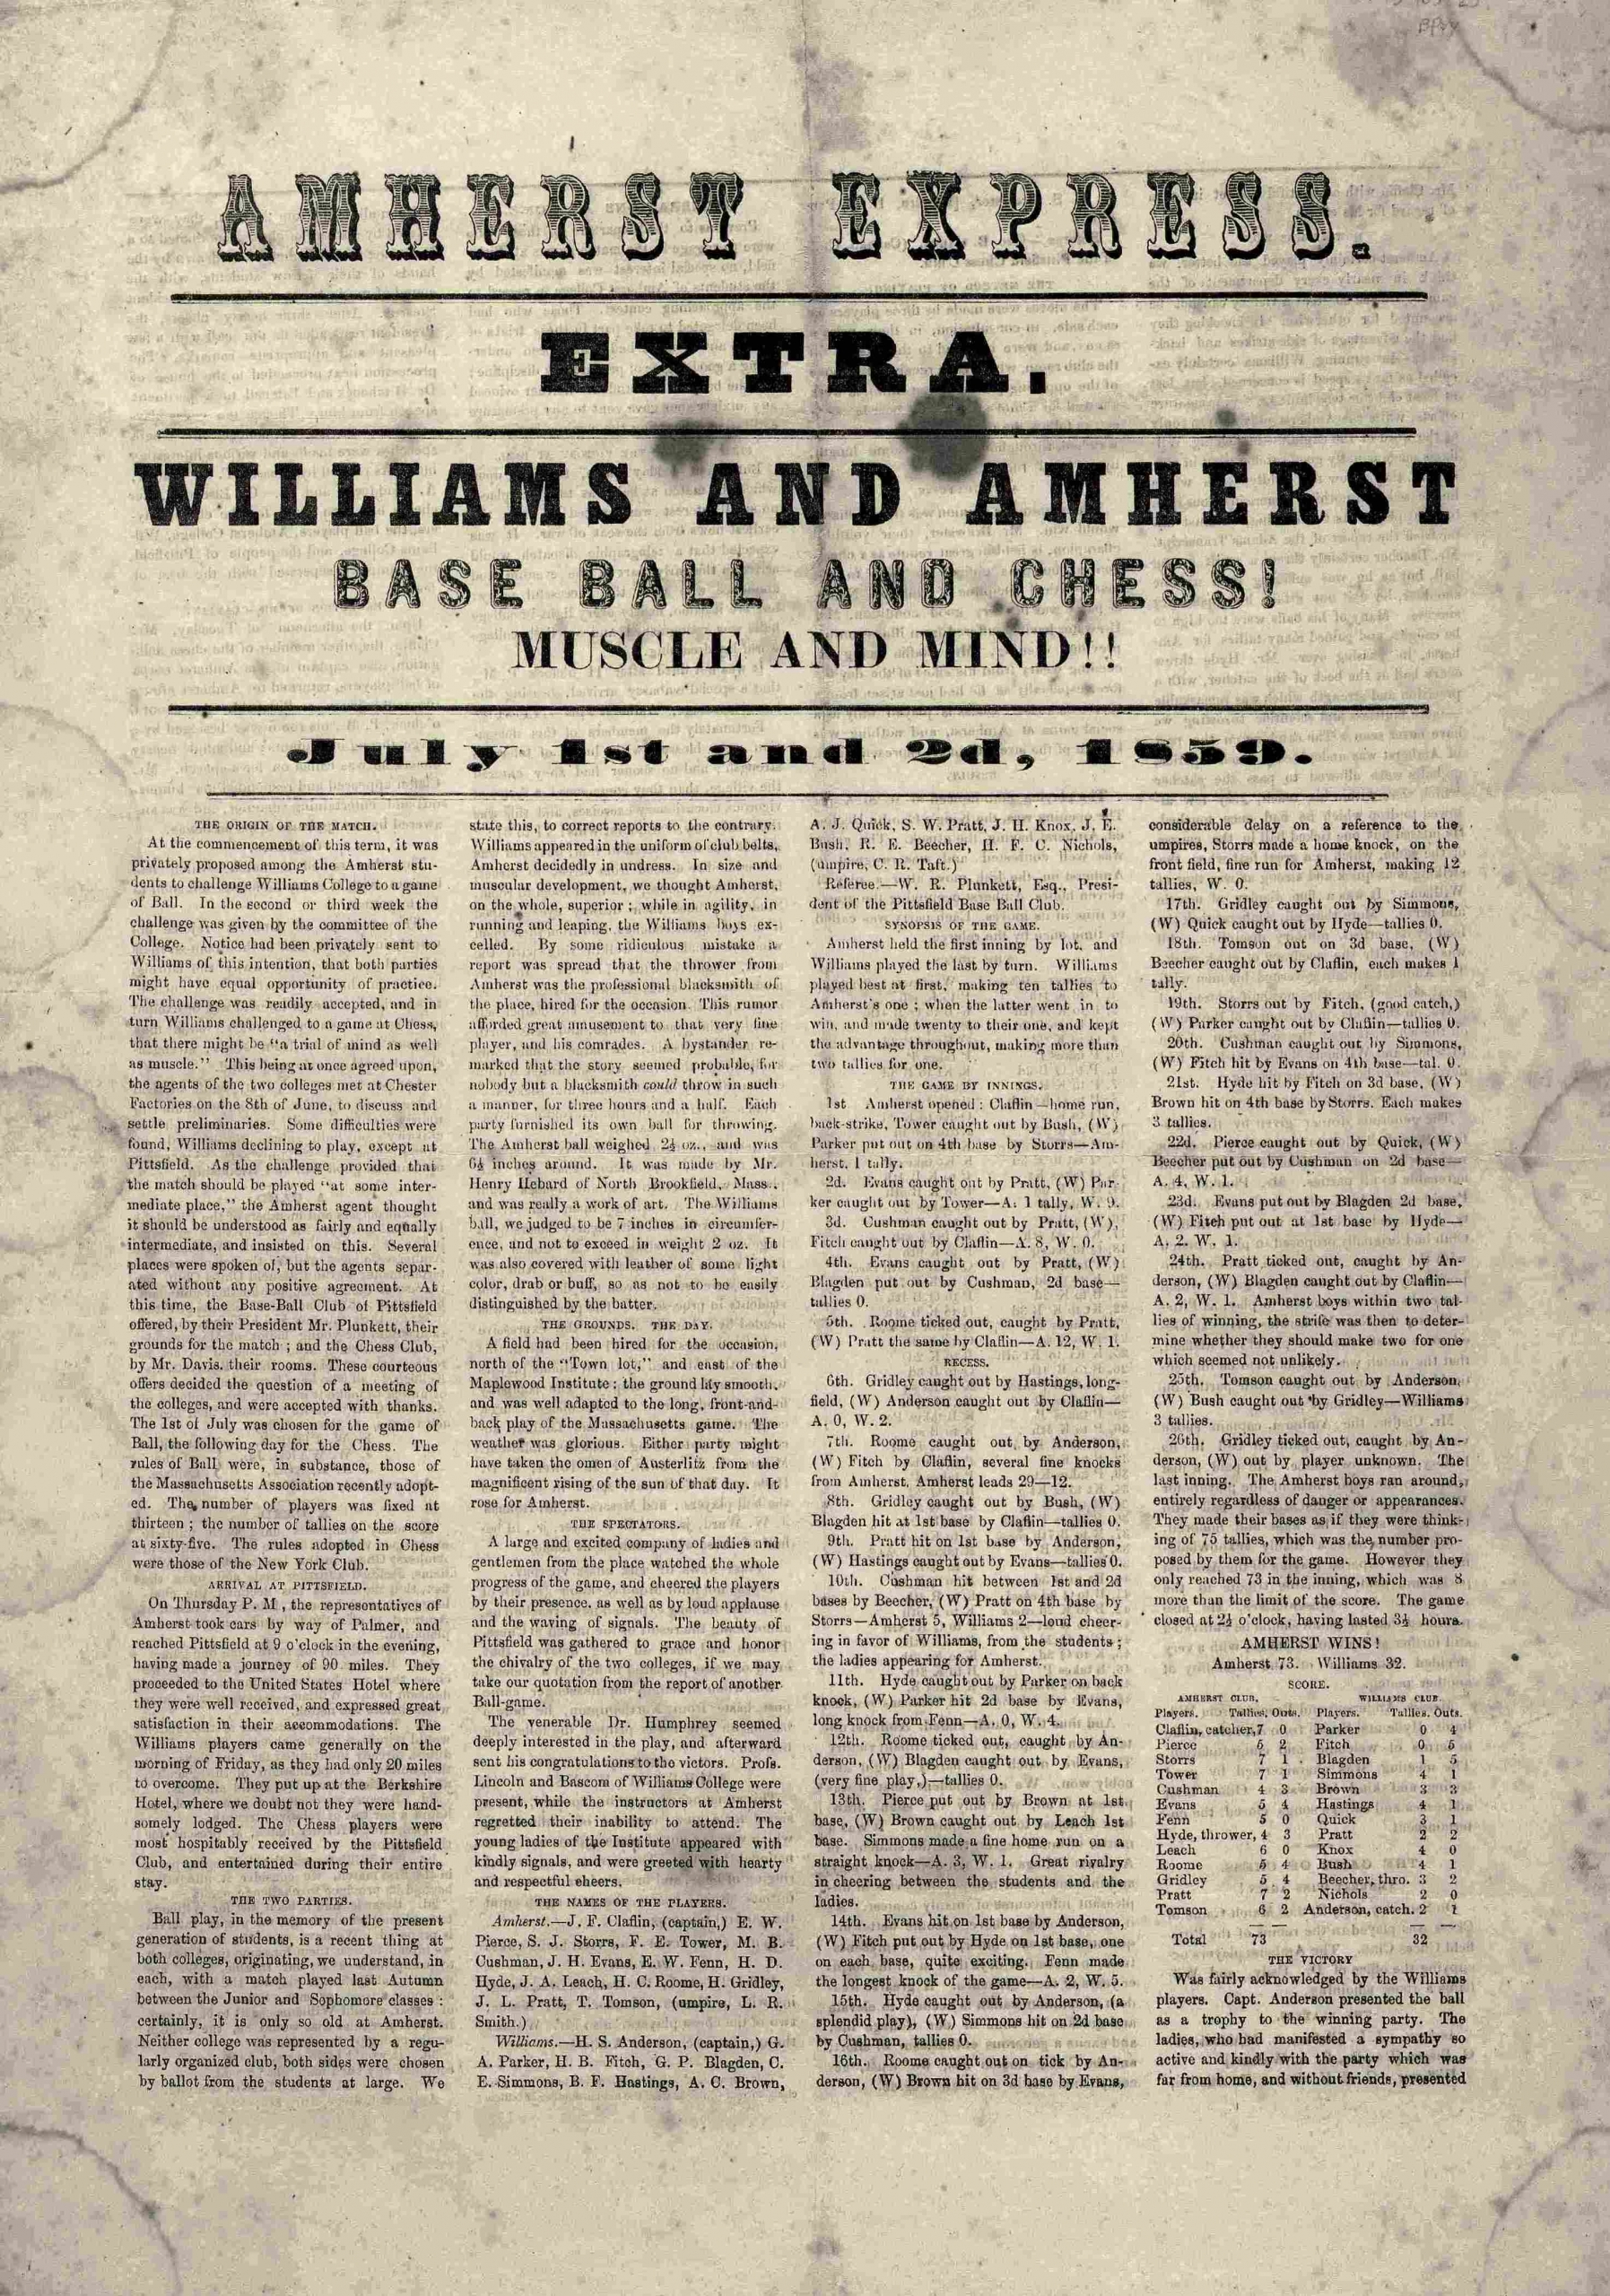 The first intercollegiate baseball match between Amherst College and Williams College shares a headline with chess.